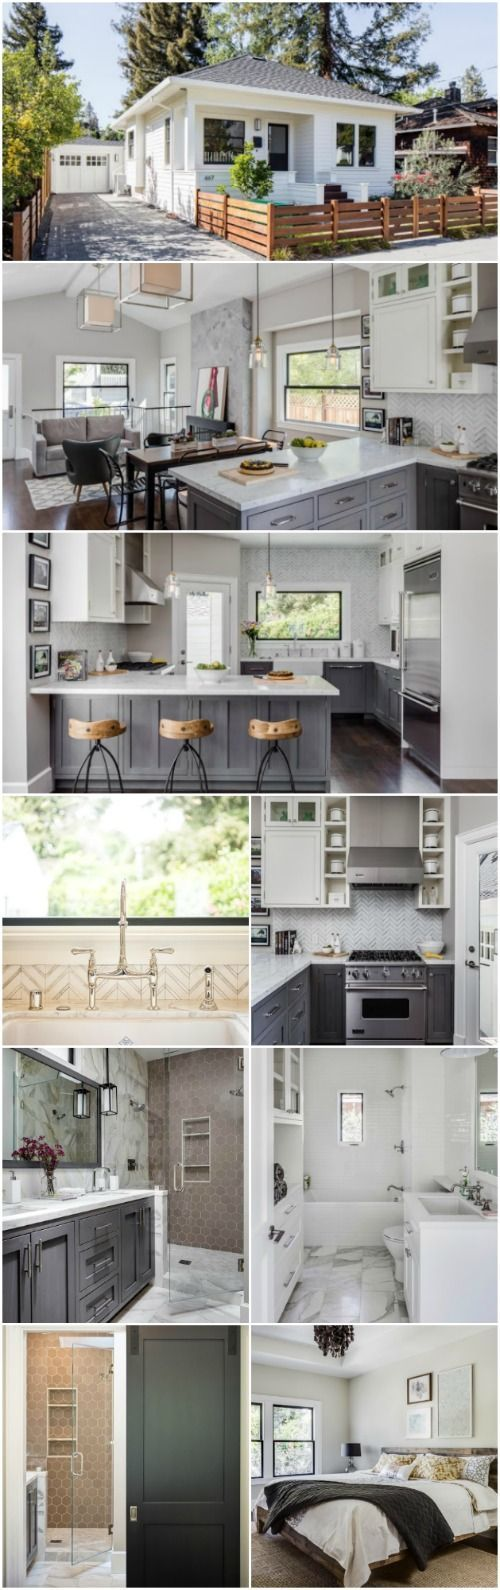 Californian Interior Designer Designs Dreamy Tiny House In Napa Valley    Lindsay Chambers Has Created A Name For Herself In The Interior Design Maru2026